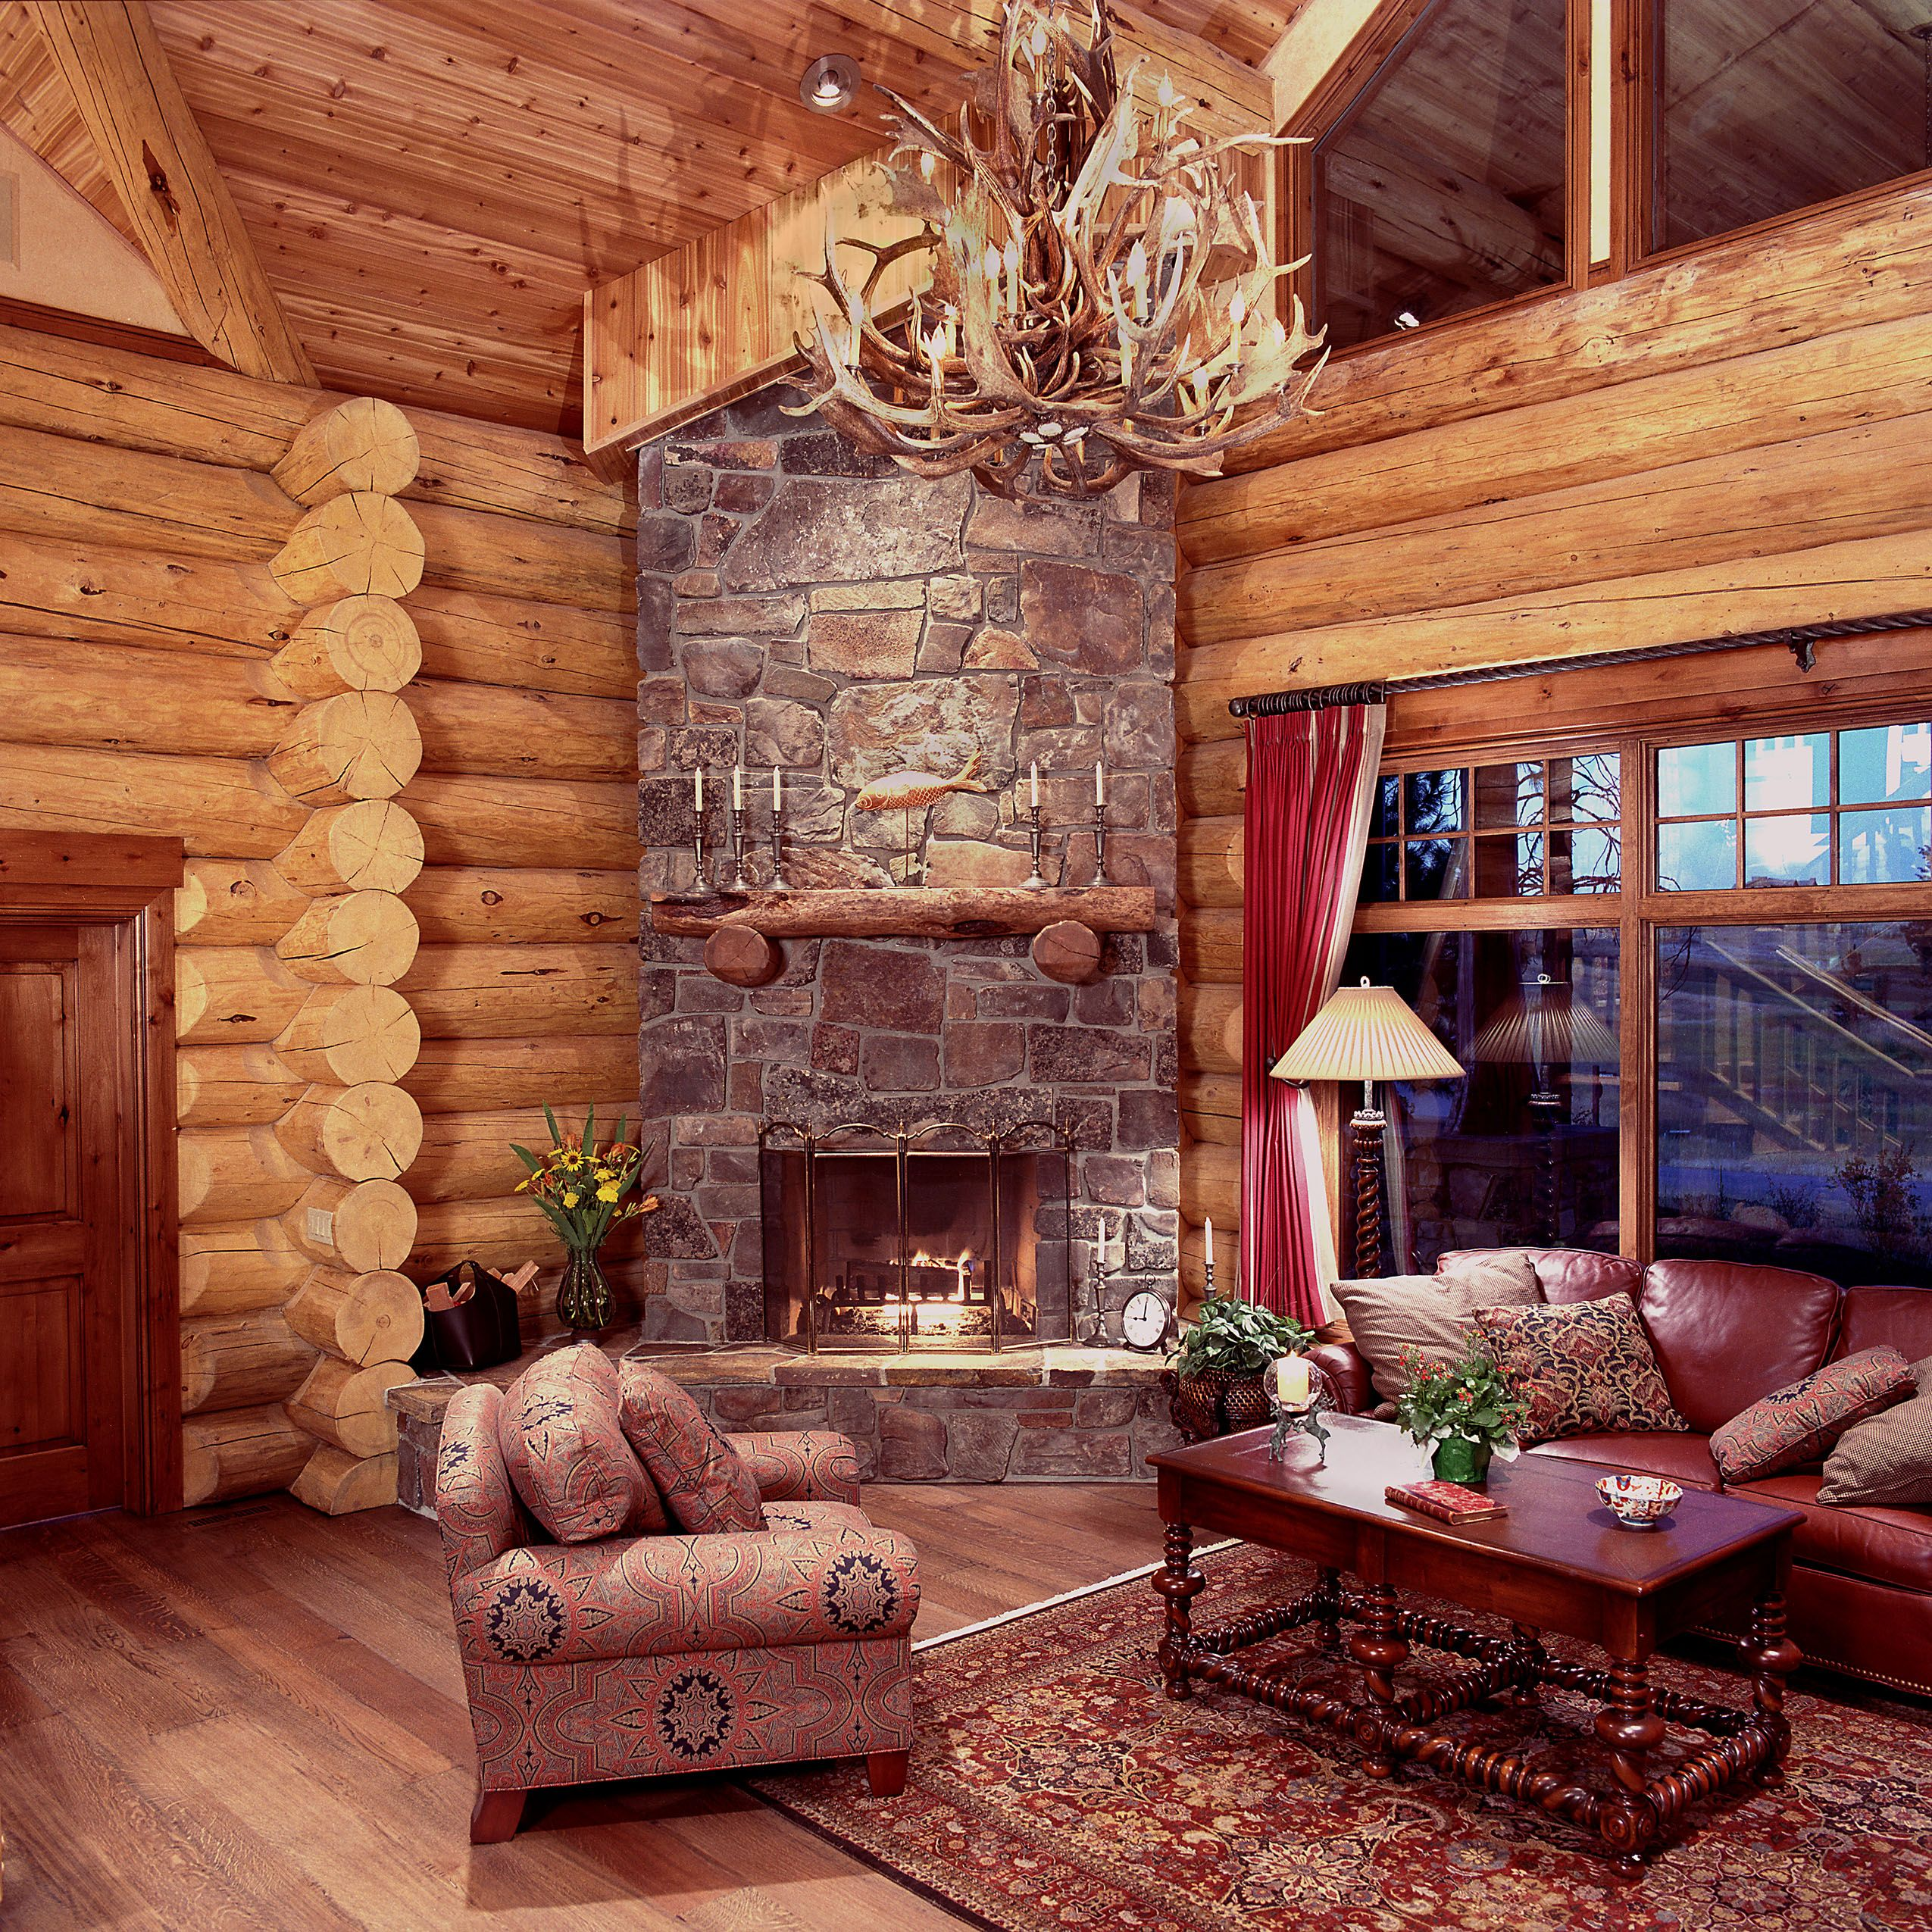 Family Living Room Design Ideas That Will Keep Everyone Happy: Handcrafted Full Scribe Log Home